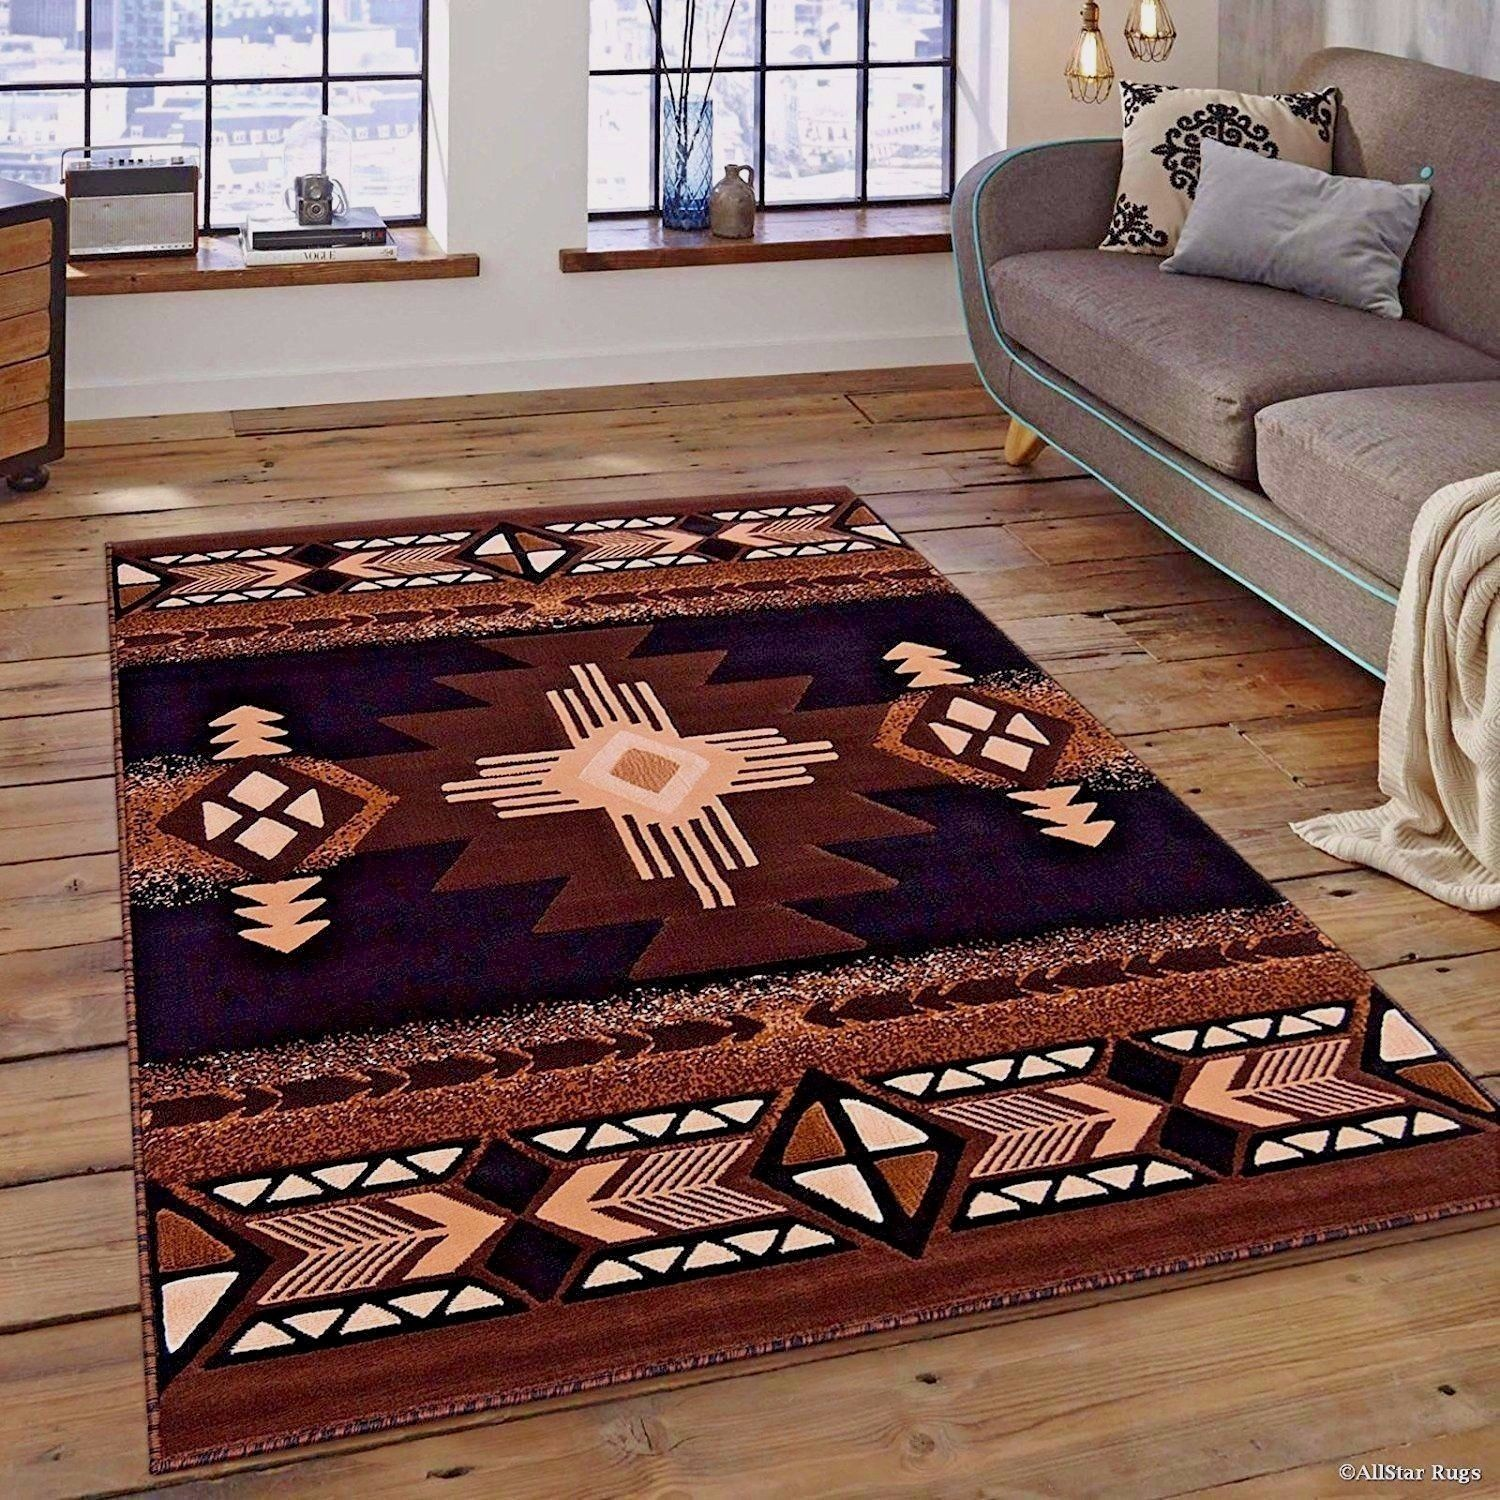 How Big Is 8x10 Rug.Details About Rugs Area Rugs Carpets 8x10 Rug Floor Modern